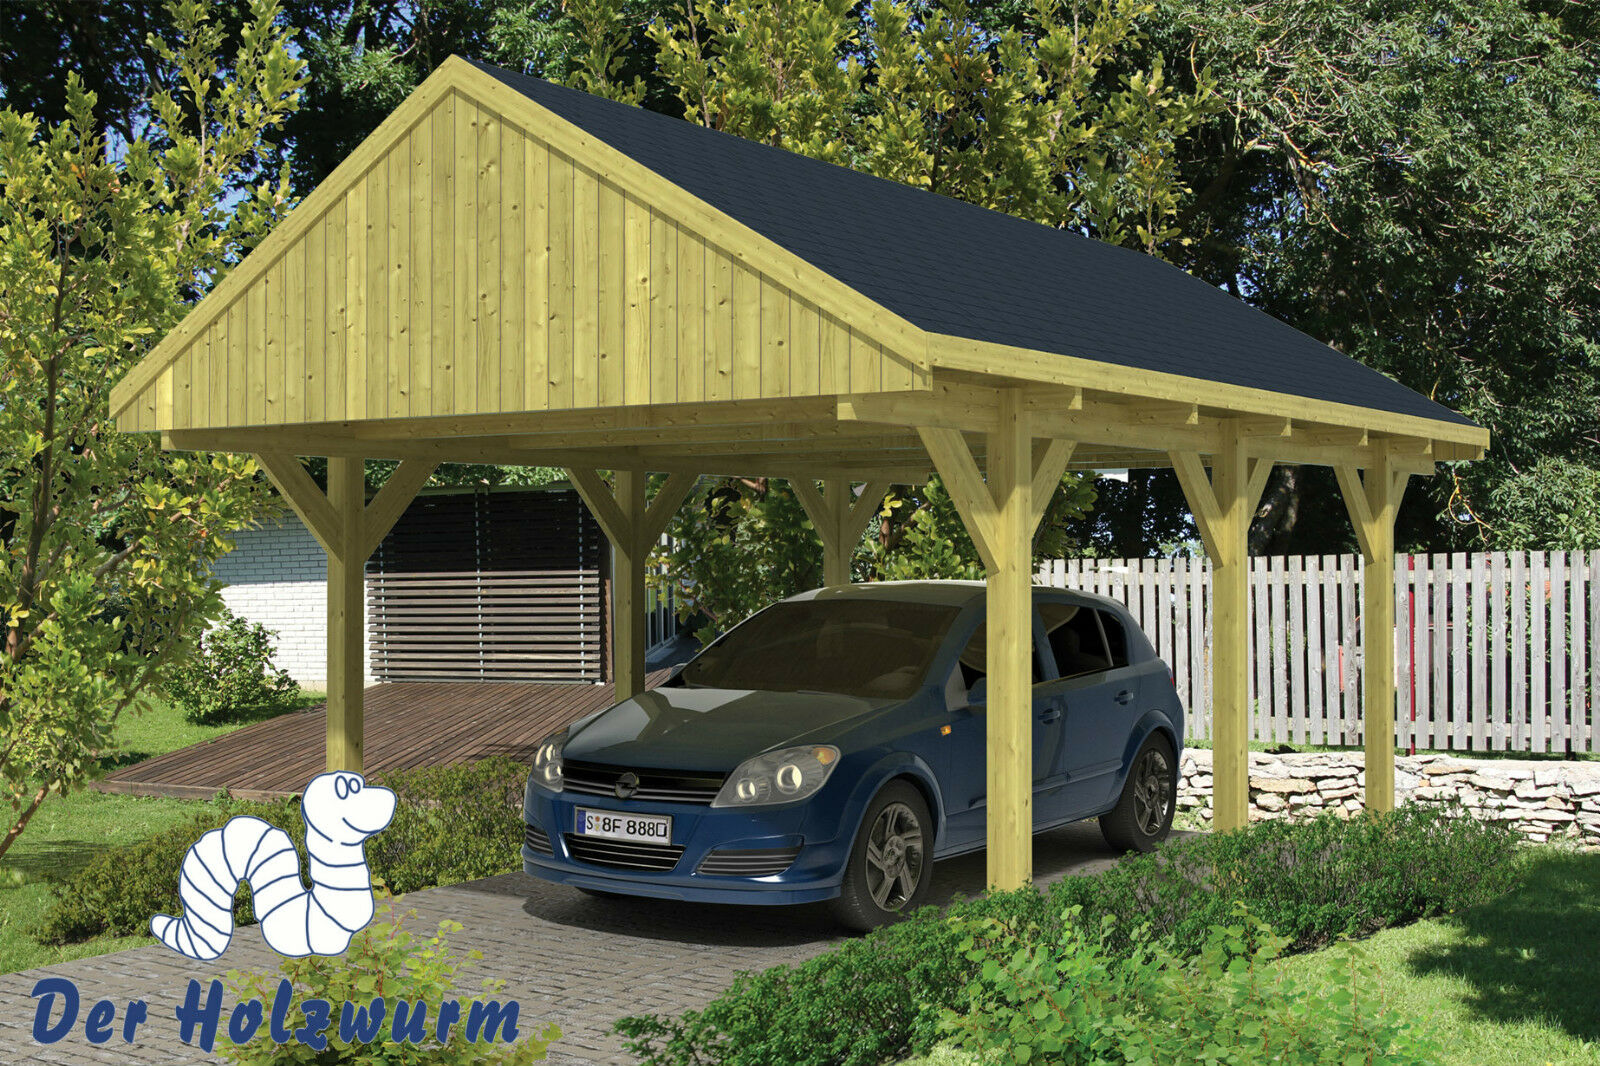 carport satteldach 400x600cm holz unterstand 12 x 12cm pfosten einzelcarport neu ebay. Black Bedroom Furniture Sets. Home Design Ideas